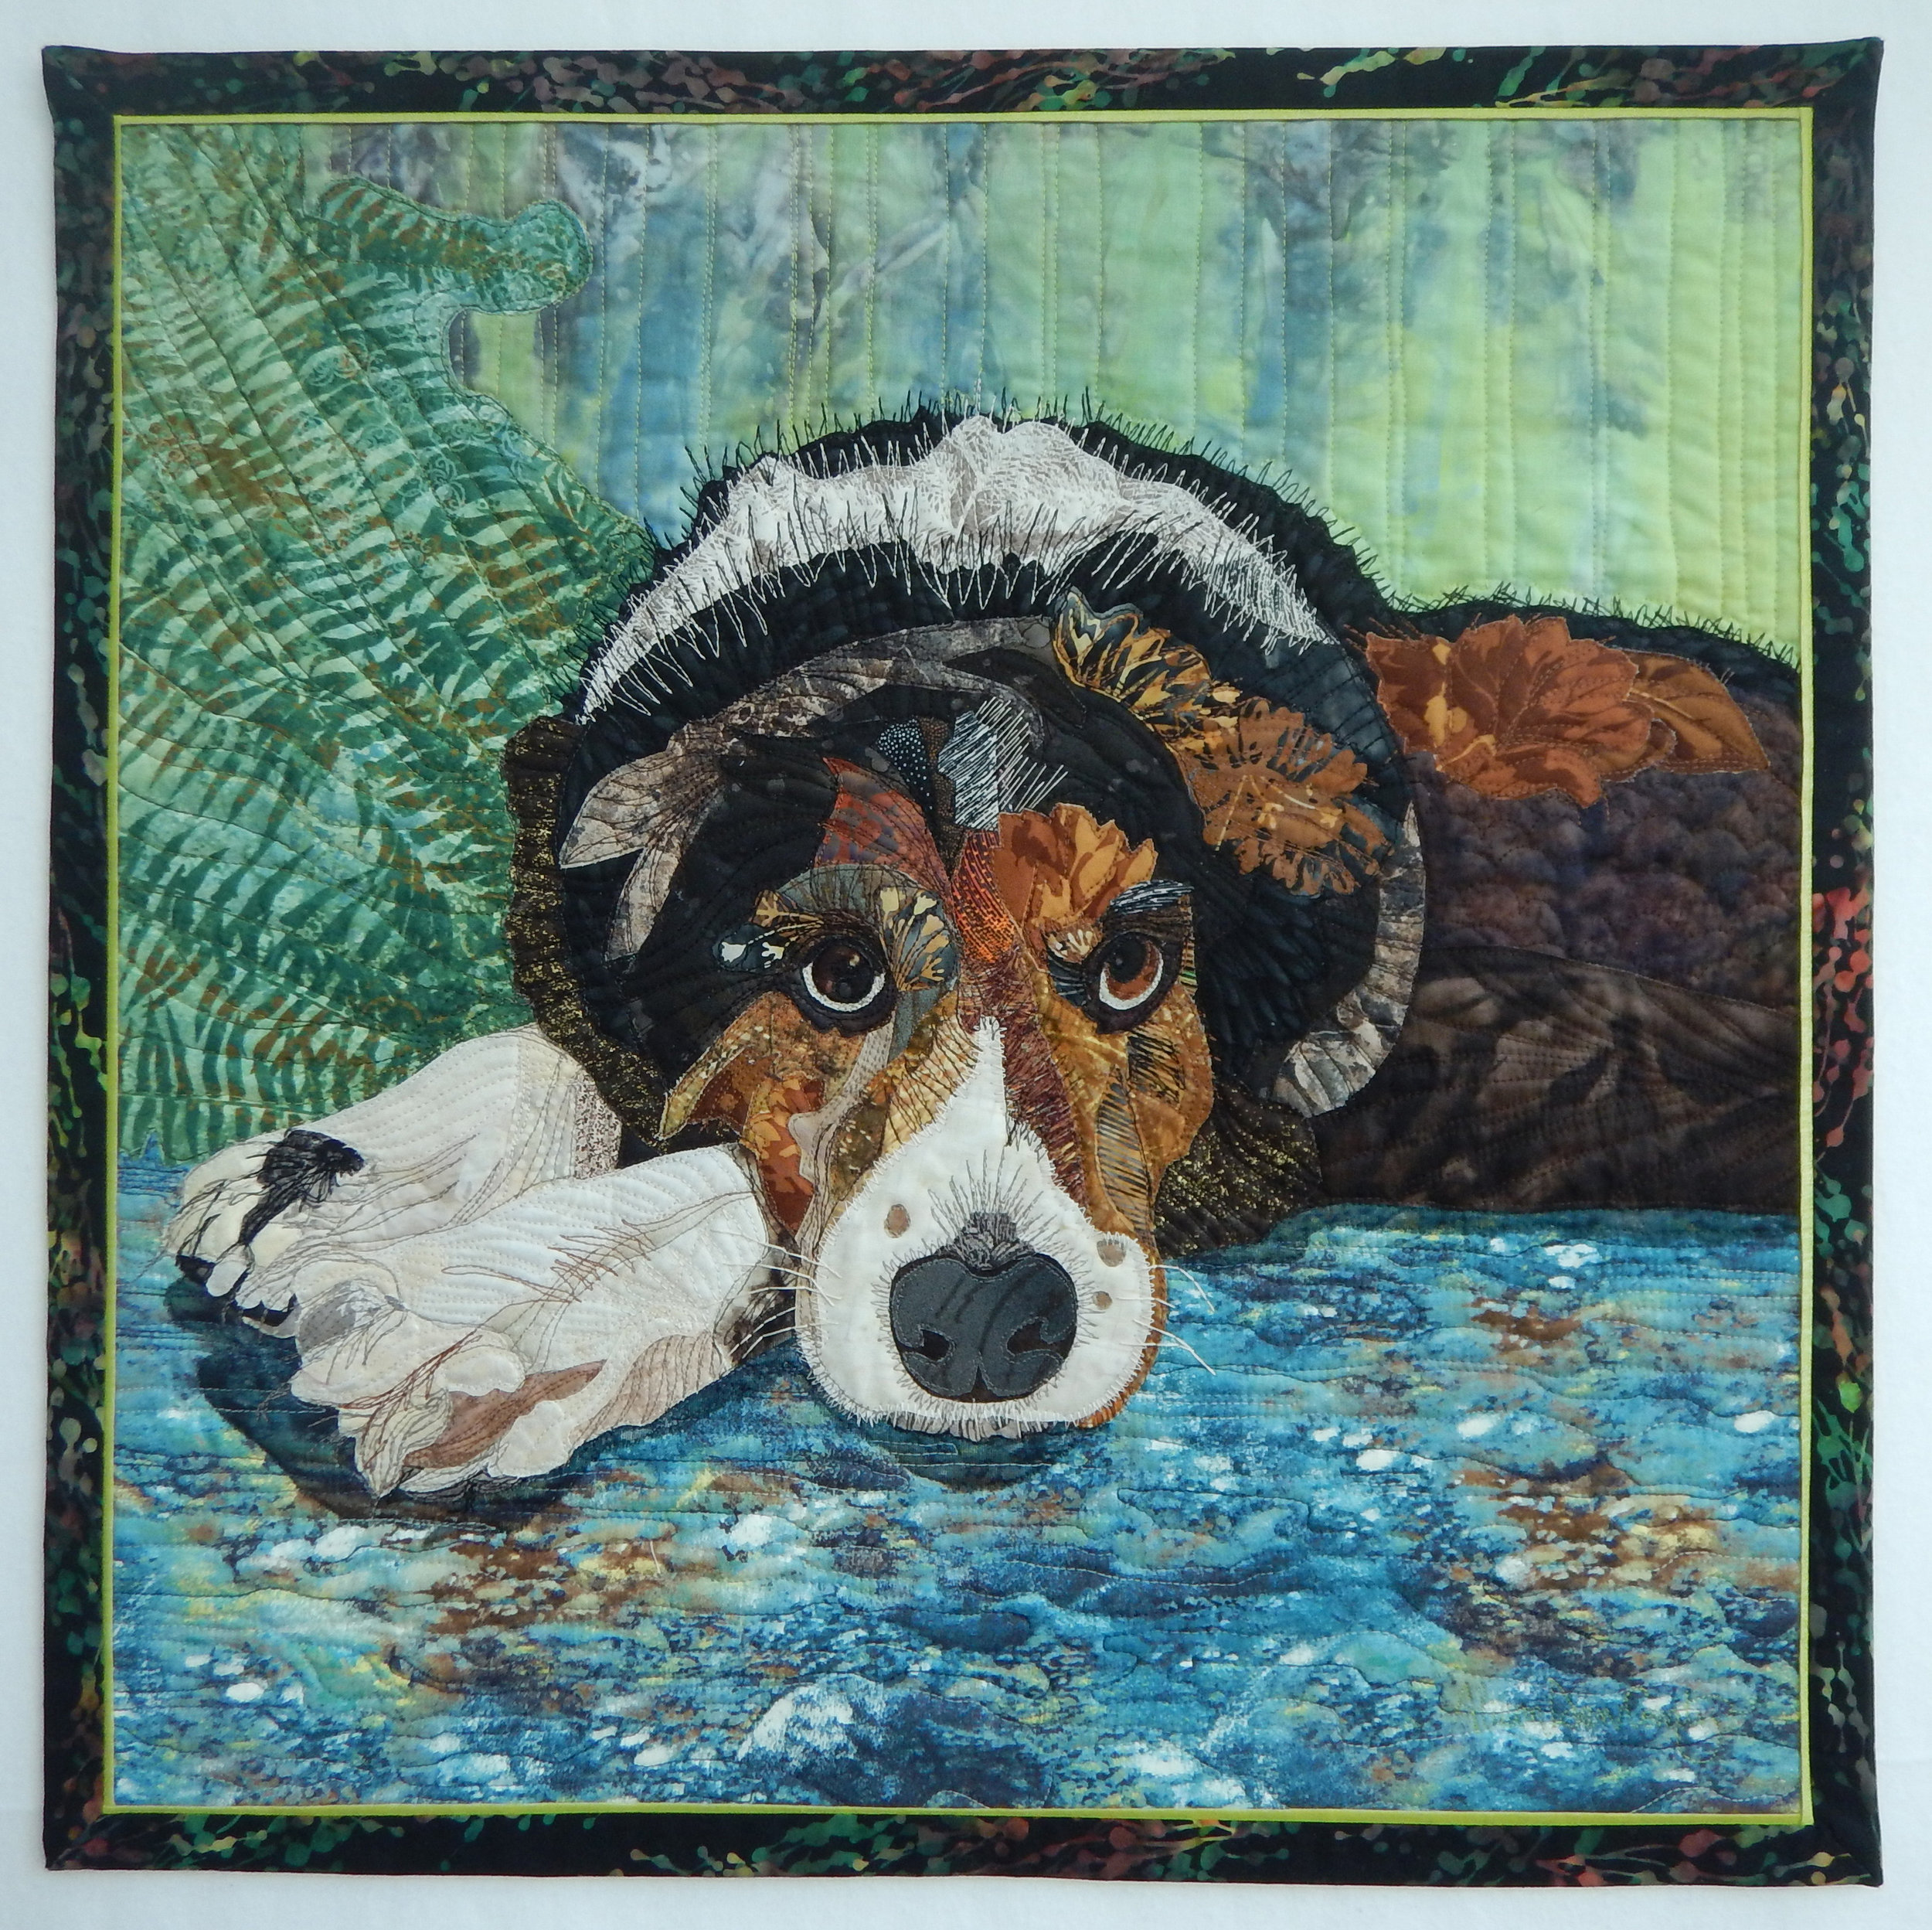 "Leo - 23"" x 23""Accepted into the Canadian Quilters' Association National Juried Show 2016With much meaning and gratitude this portrait was brought to life. A physician and friend was intrigued with my previous work using fabric as an art medium and she asked me to make a portrait of her Border Collie, Leo. He is a beloved family pet who is in his twilight years. It was my goal to communicate his loyal and gentle spirit in fabric. For me it comes alive when I get the eyes right!"